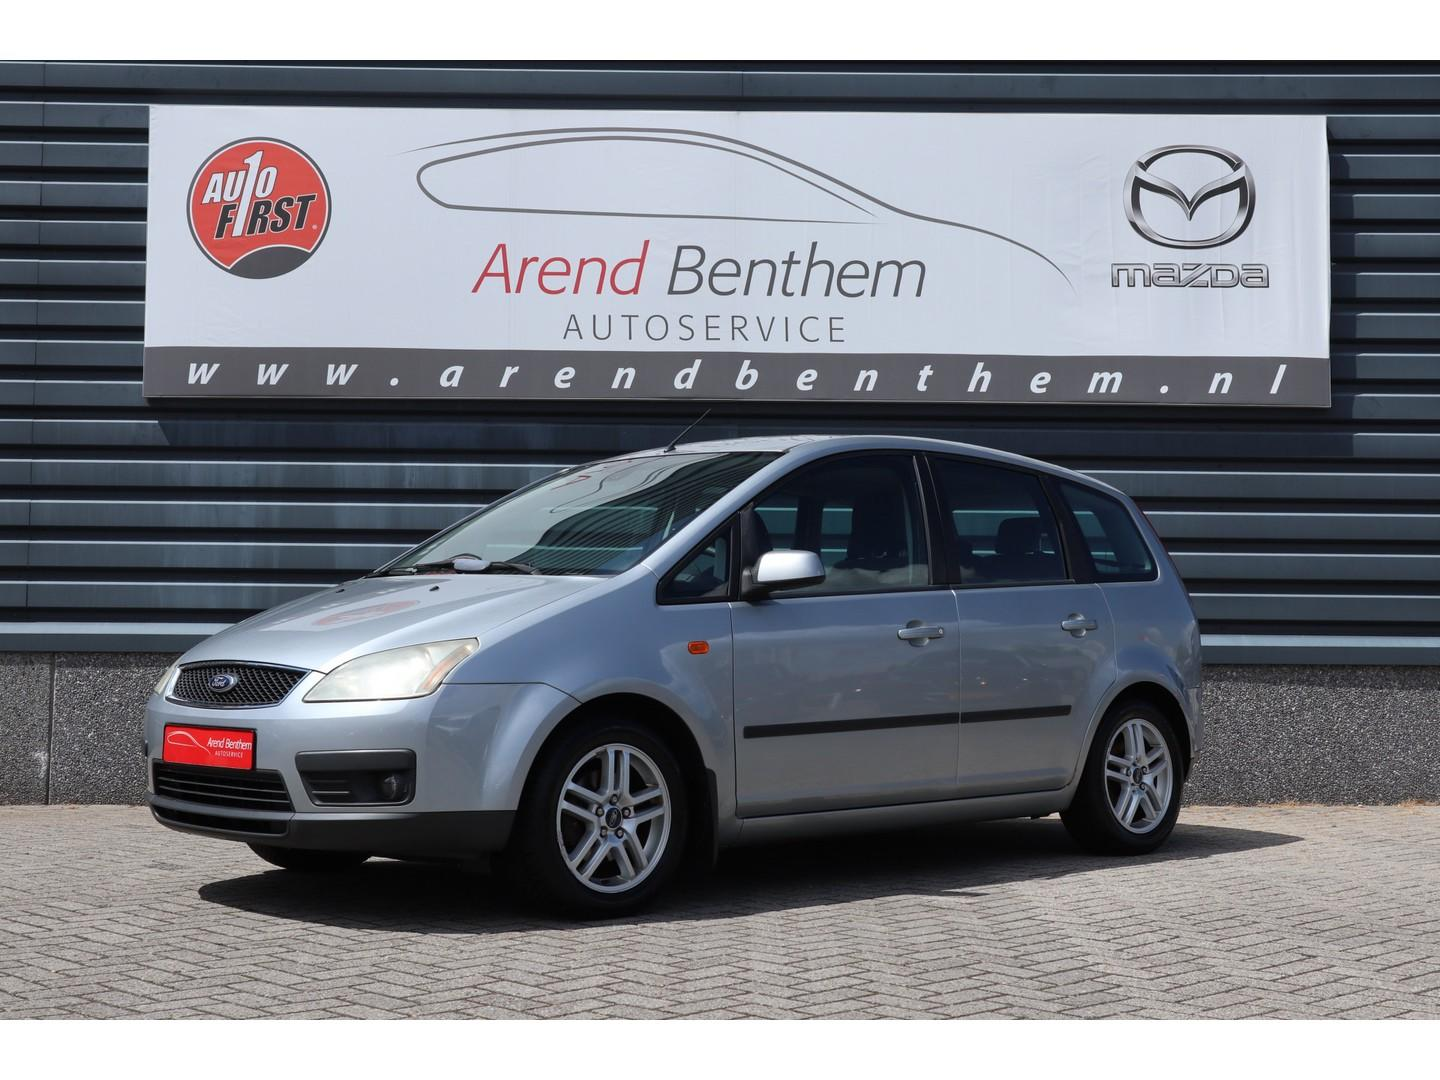 Ford Focus c-max 1.8-16v first edition - airco - roest rechter voorscherm